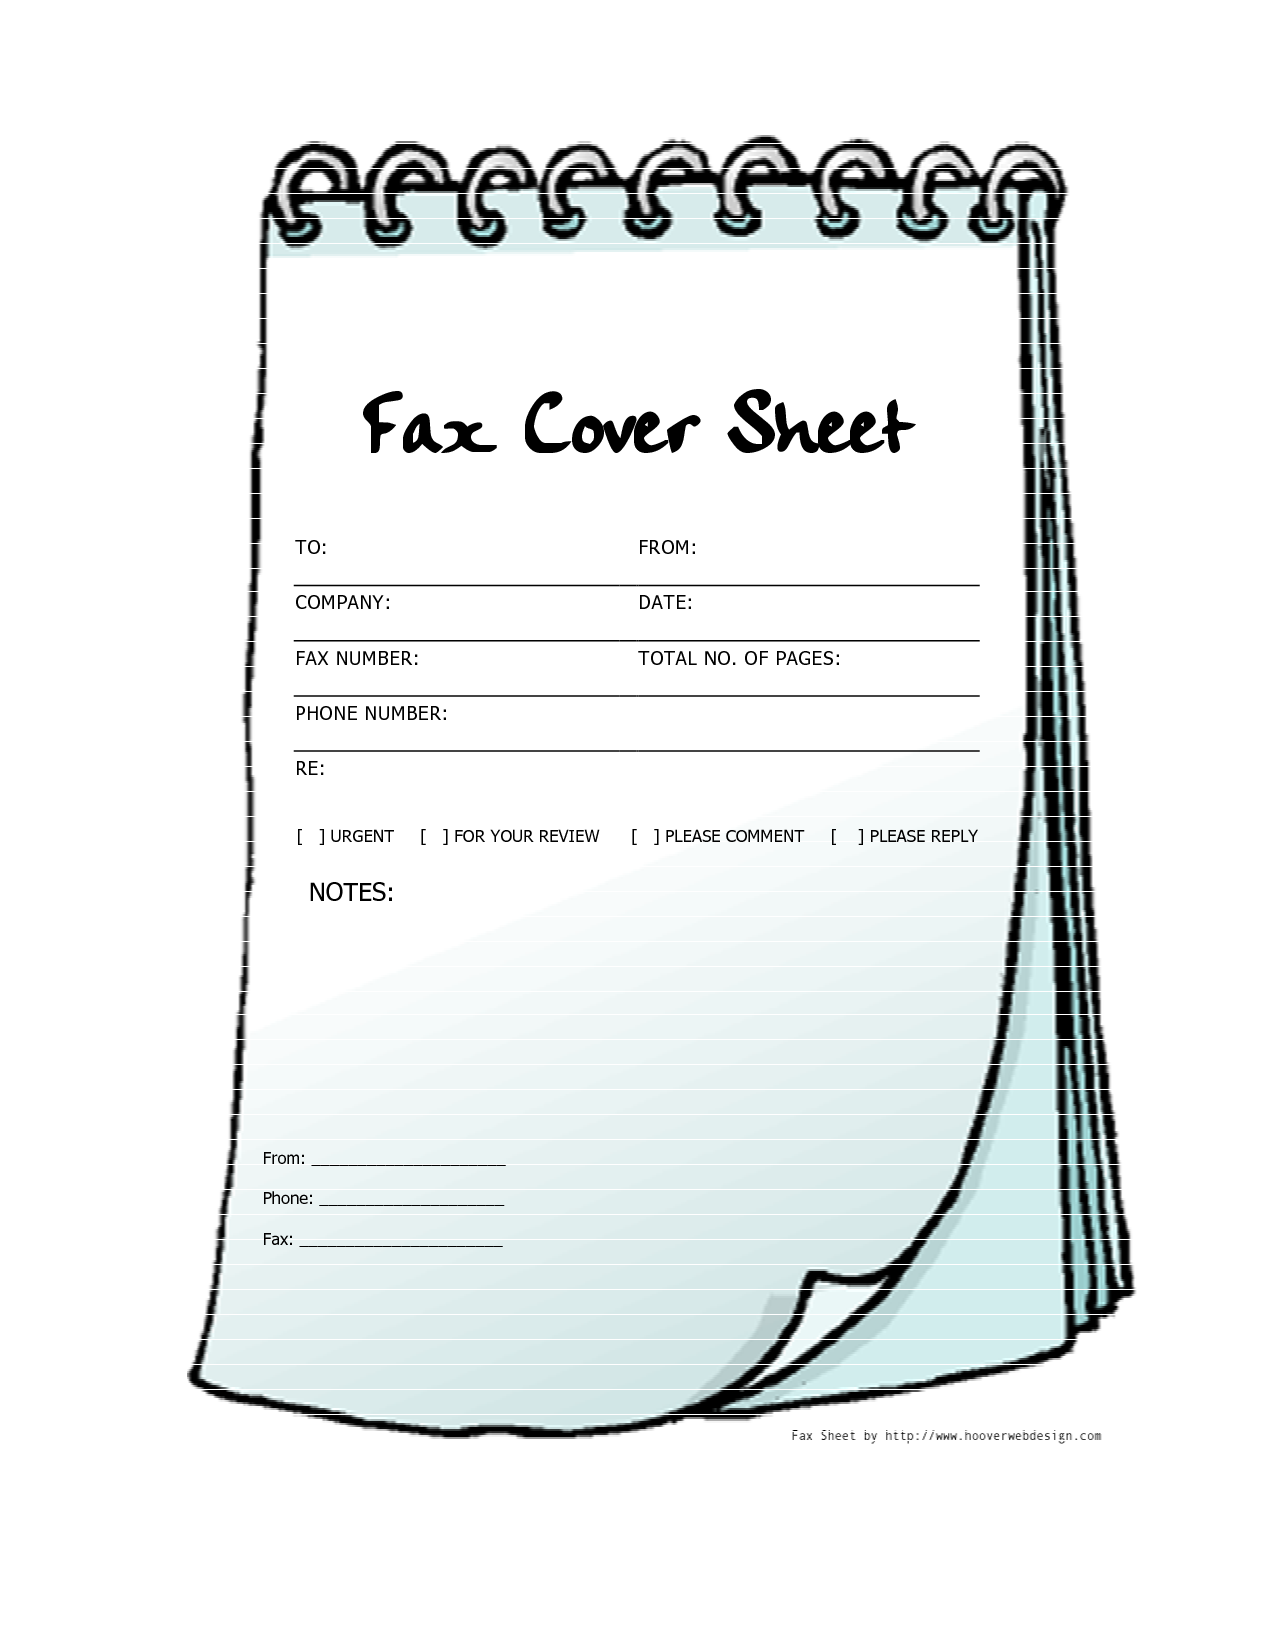 Free Fax Cover Sheet Free Printable Fax Cover Sheet Template